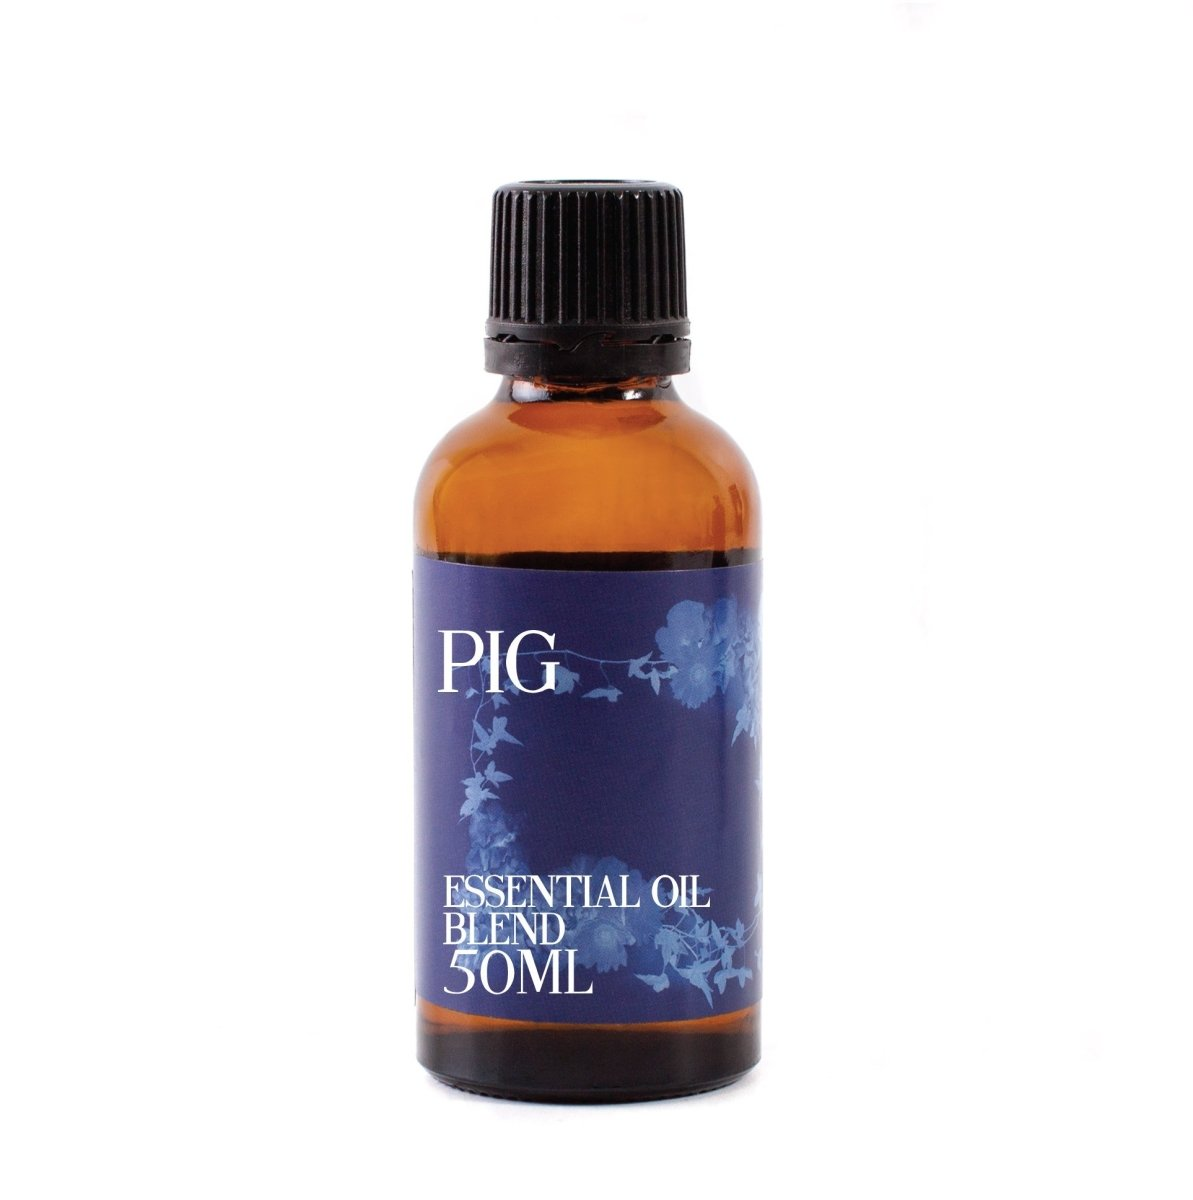 Pig - Chinese Zodiac - Essential Oil Blend - Mystic Moments UK